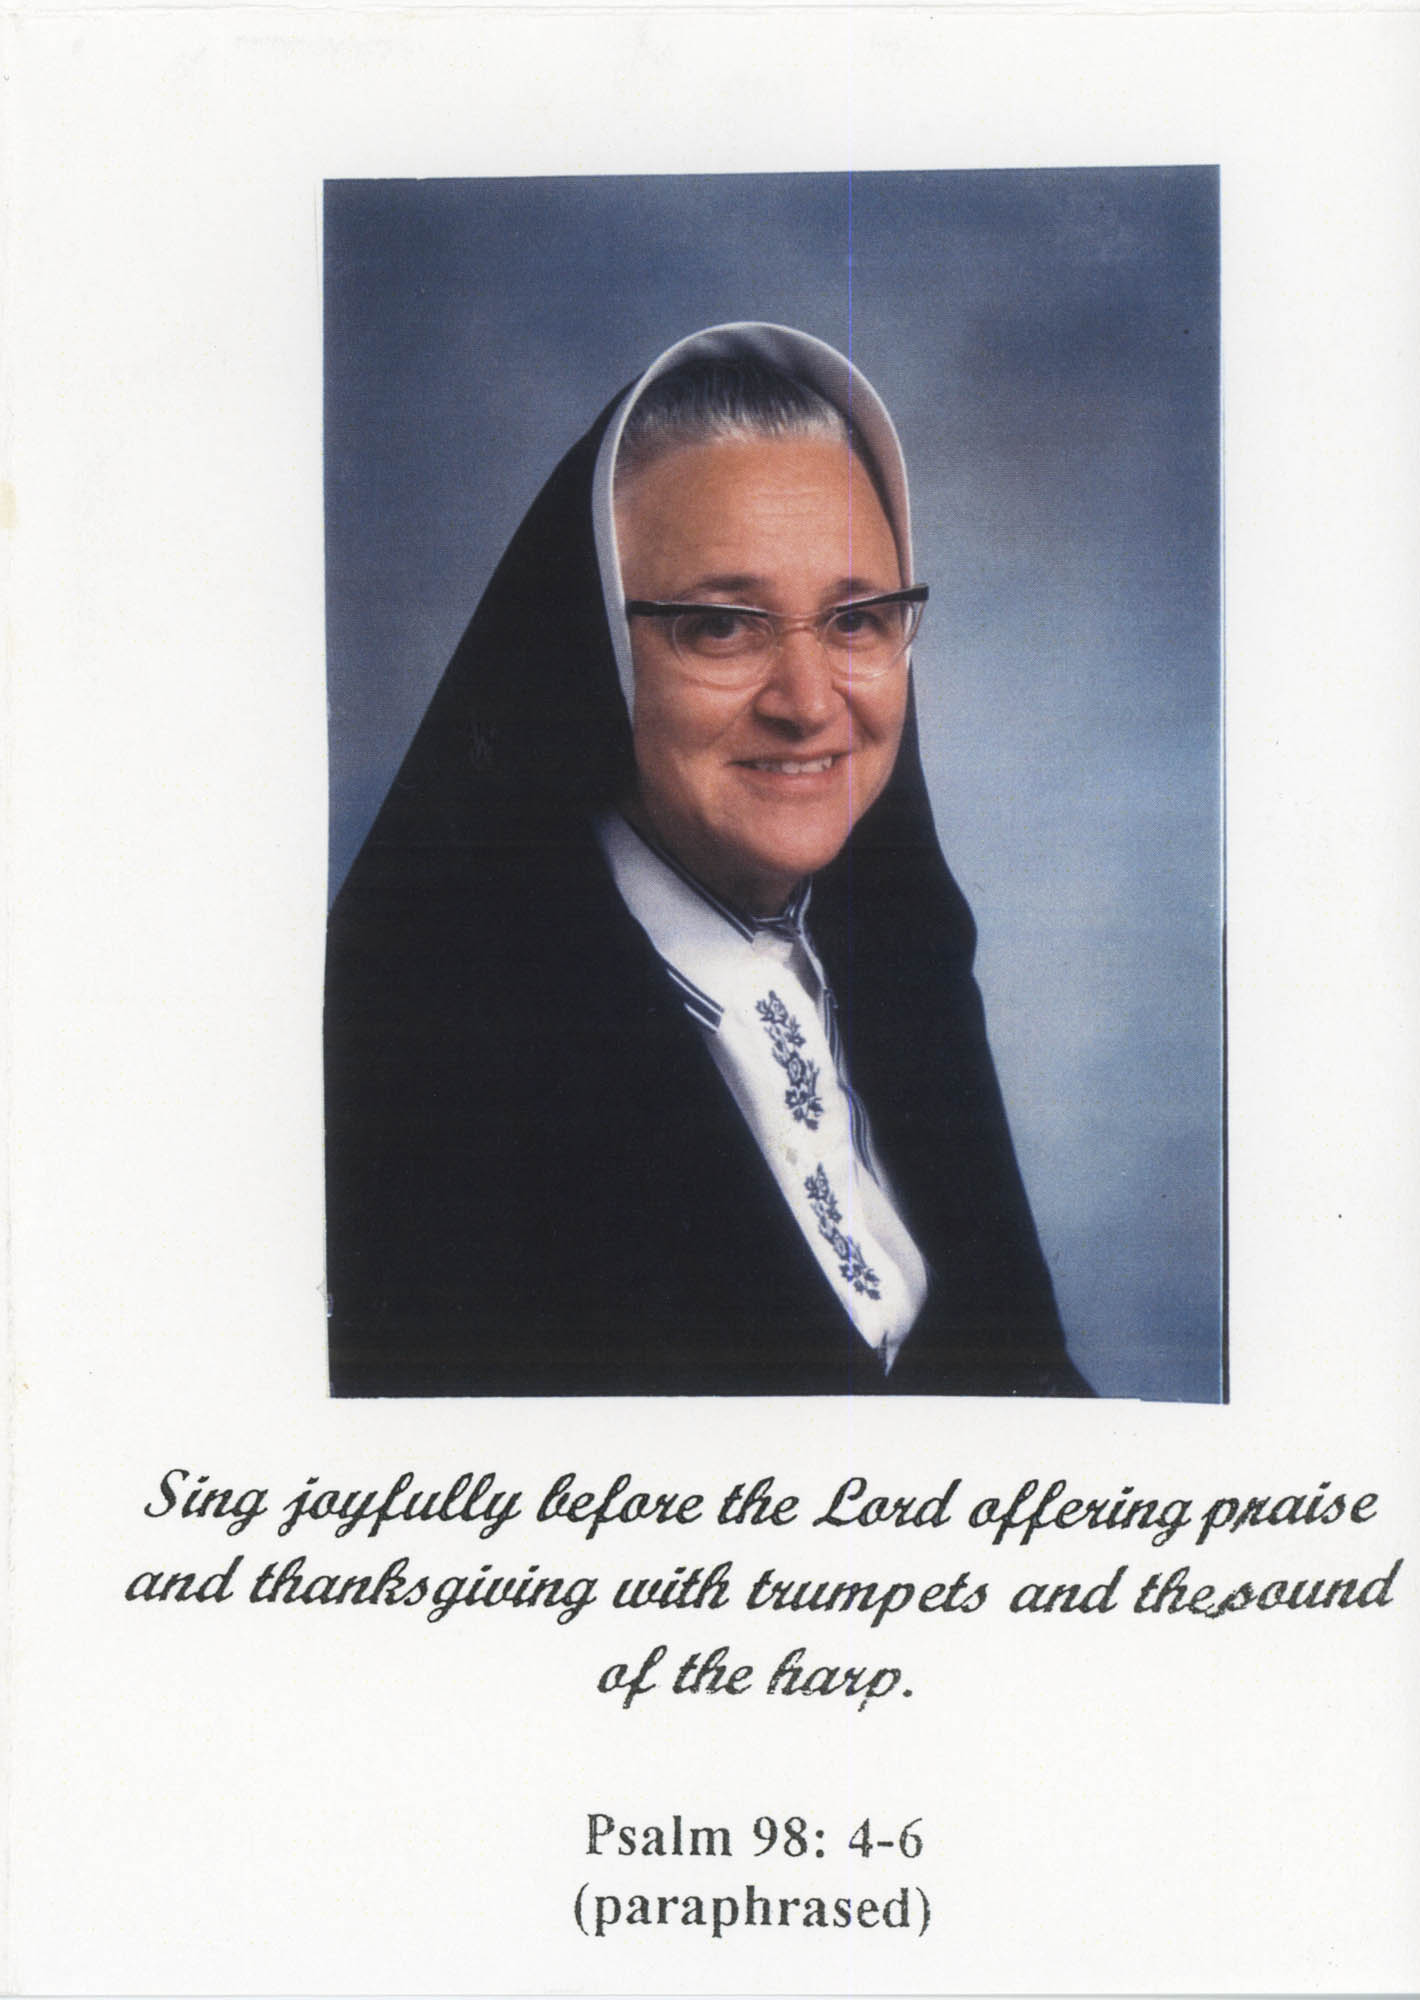 Tarjeta de agradecimiento de la hermana Maria Amelia Ferillo  /  Thank You Card From Sister Maria Amelia Ferrillo